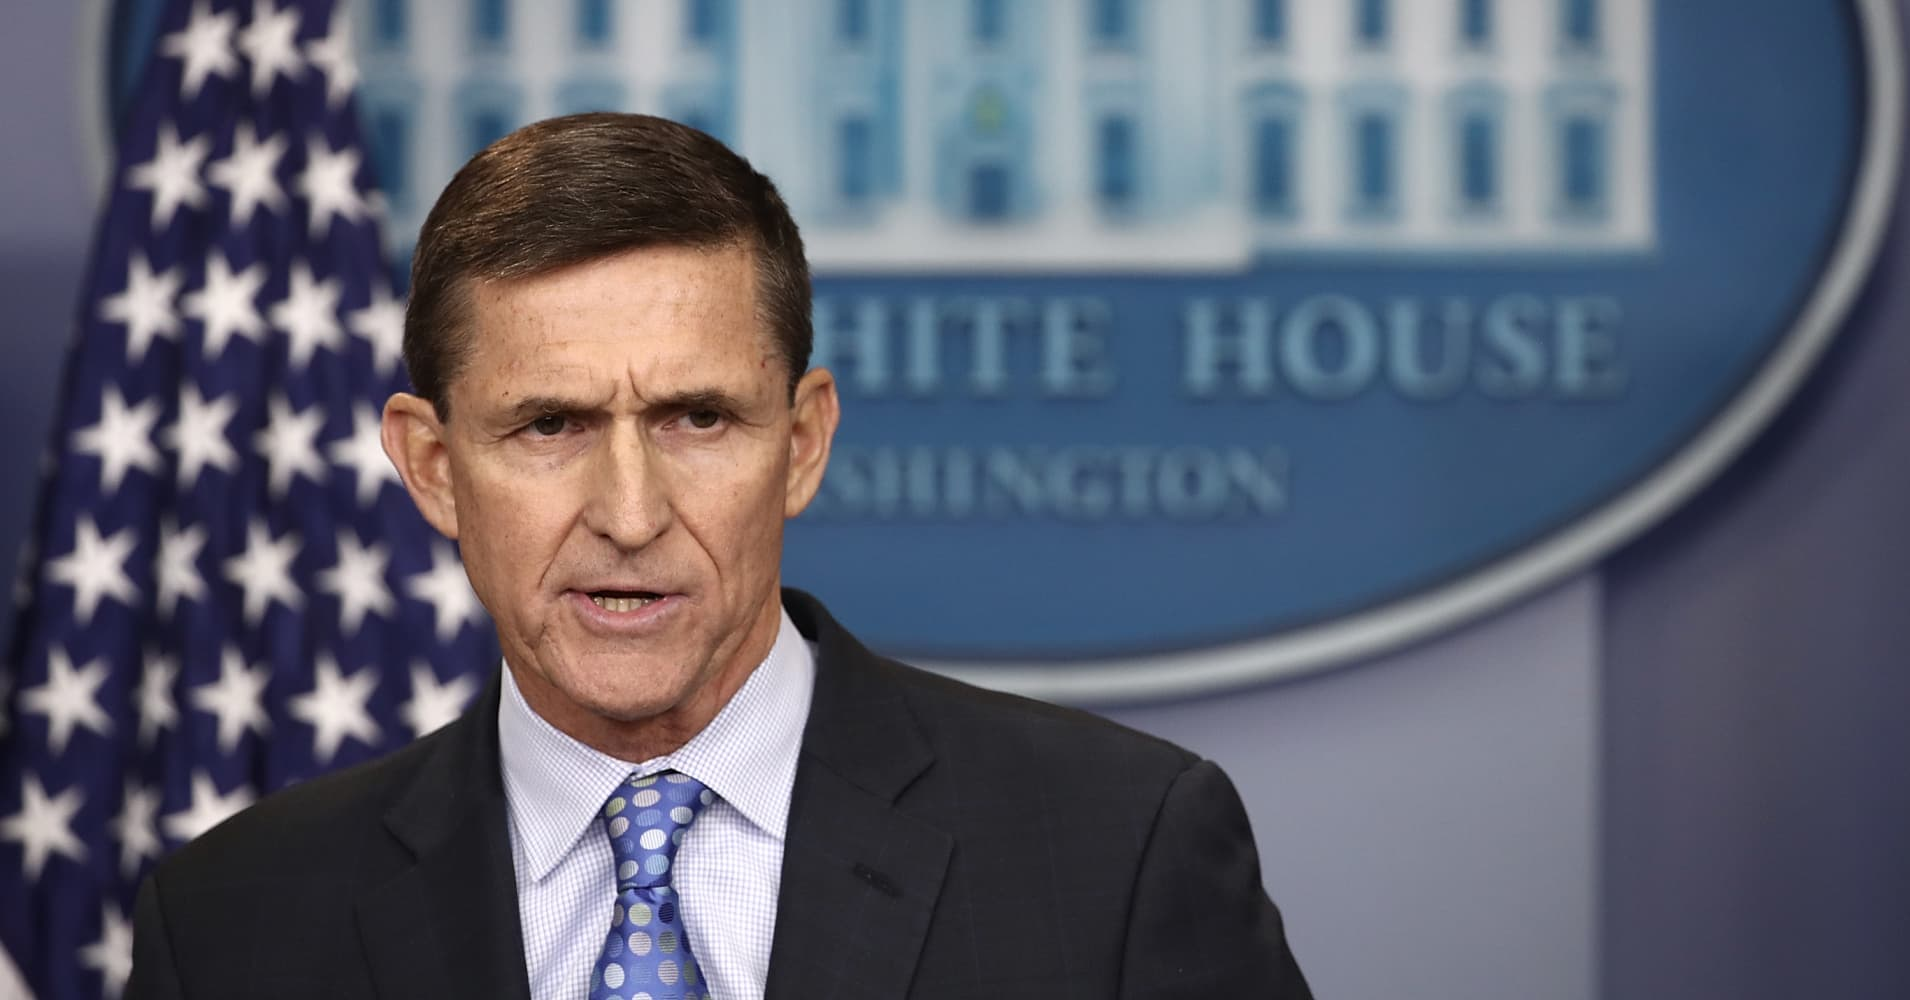 Senate intelligence panel to subpoena Flynn's businesses